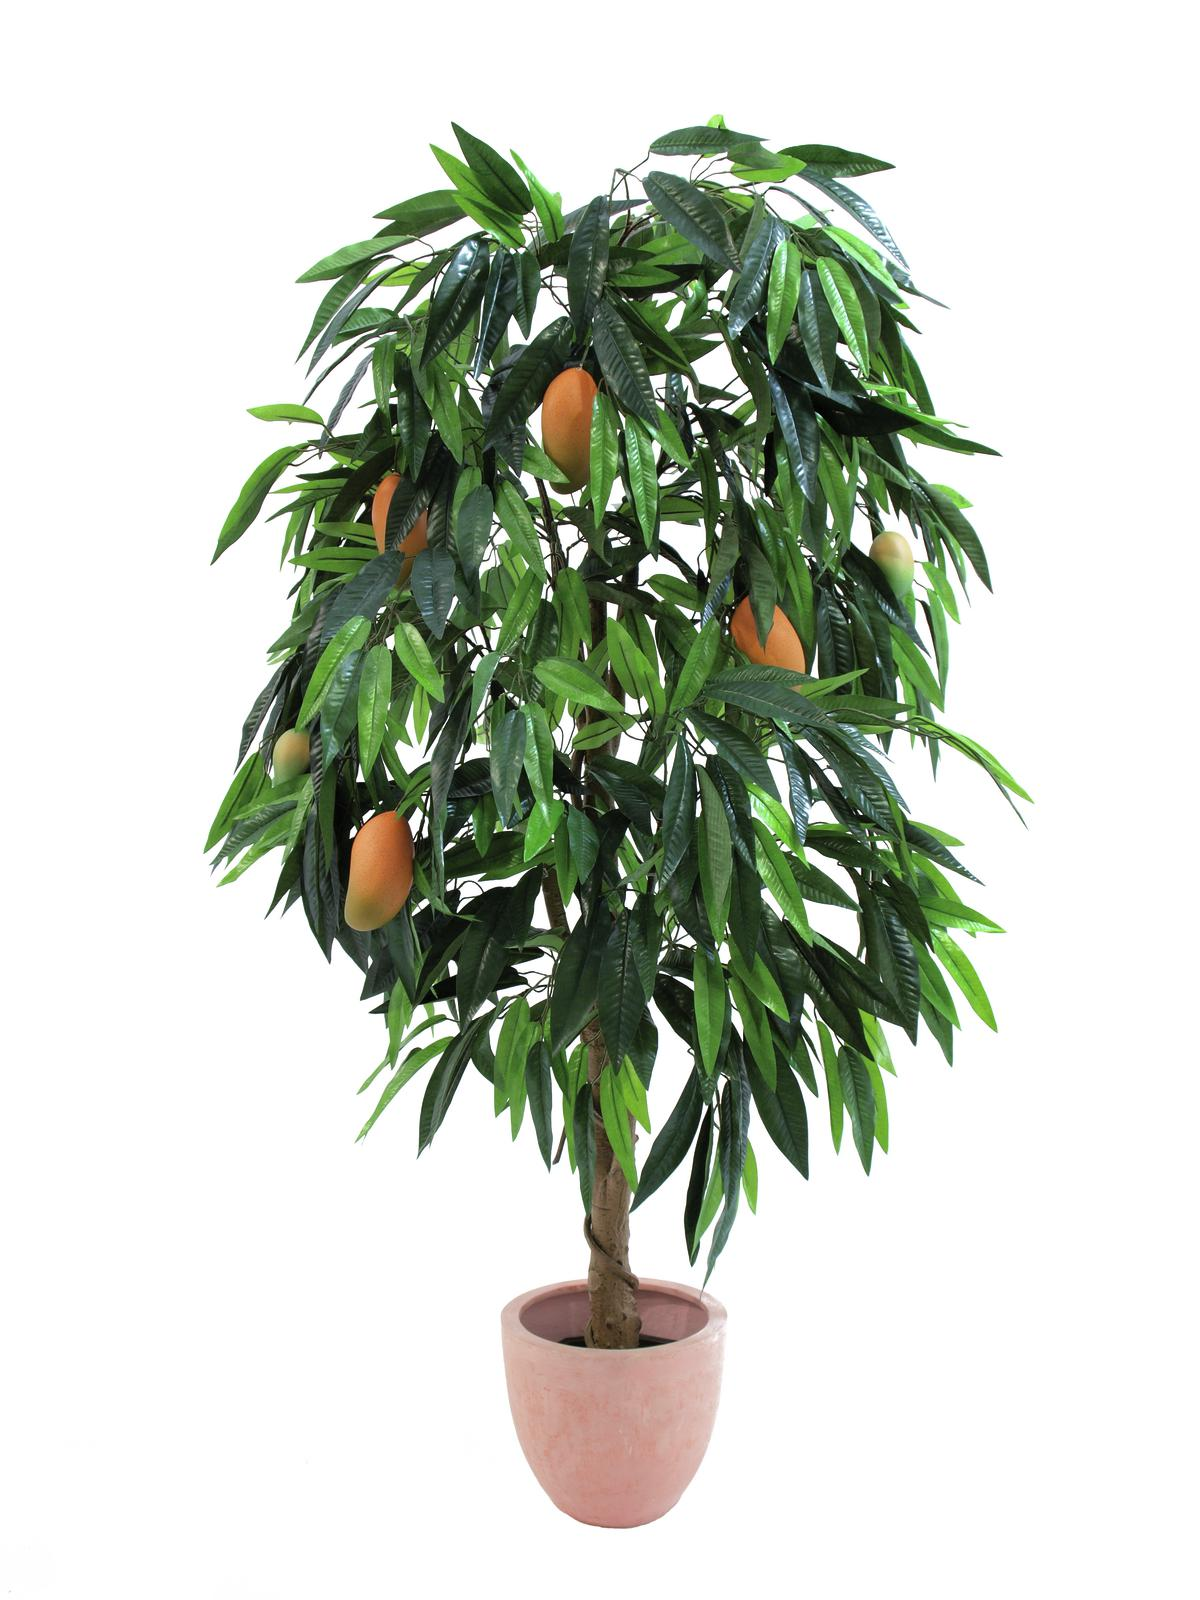 EUROPALMS Artificial plants Mango tree with fruits, 165cm